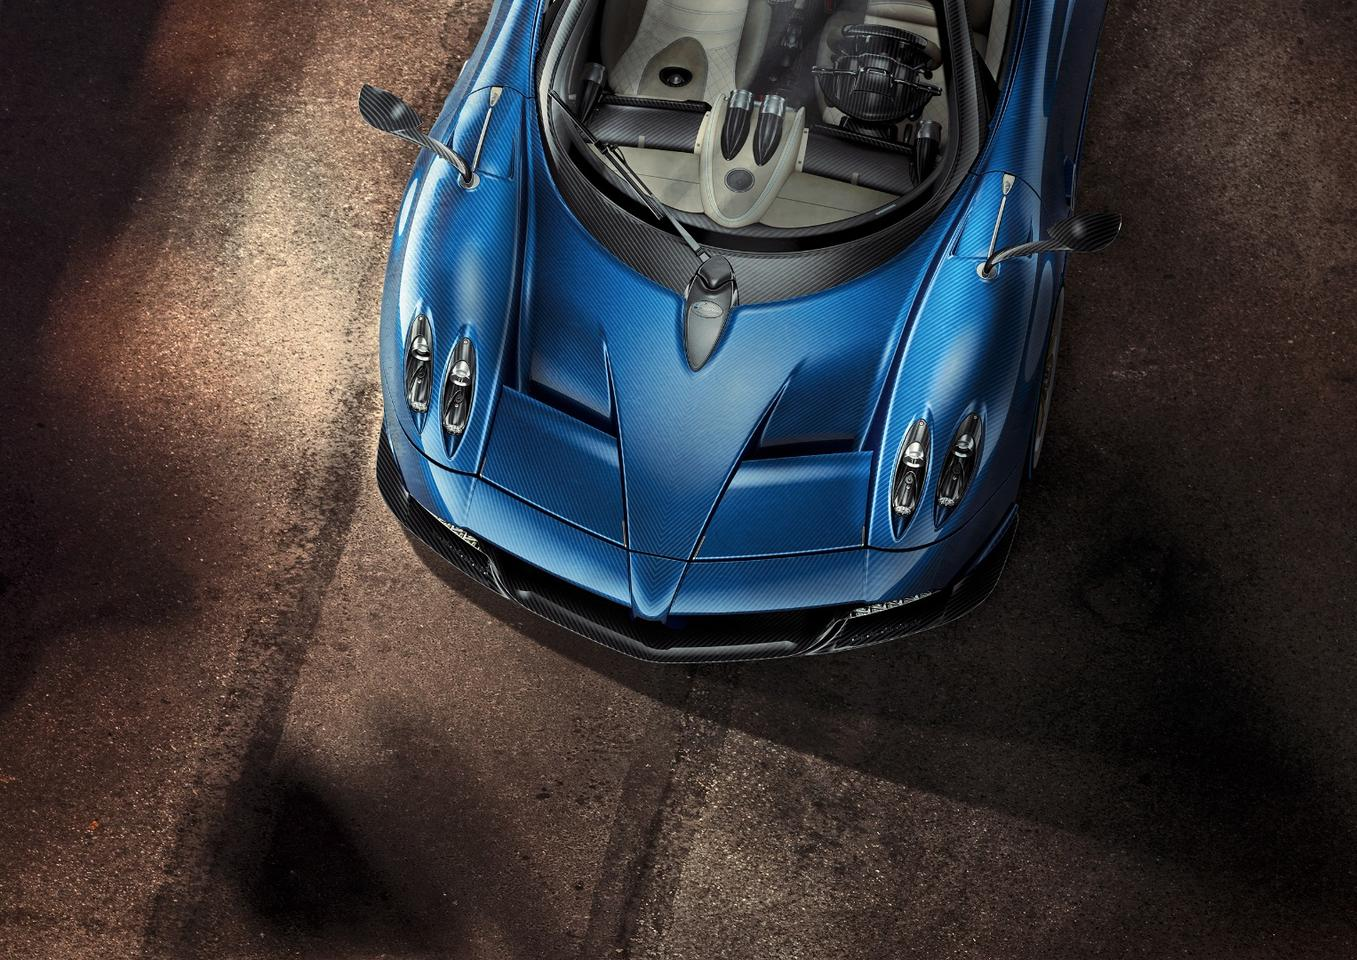 A bird's eye view of the new Pagani Huayra Roadster